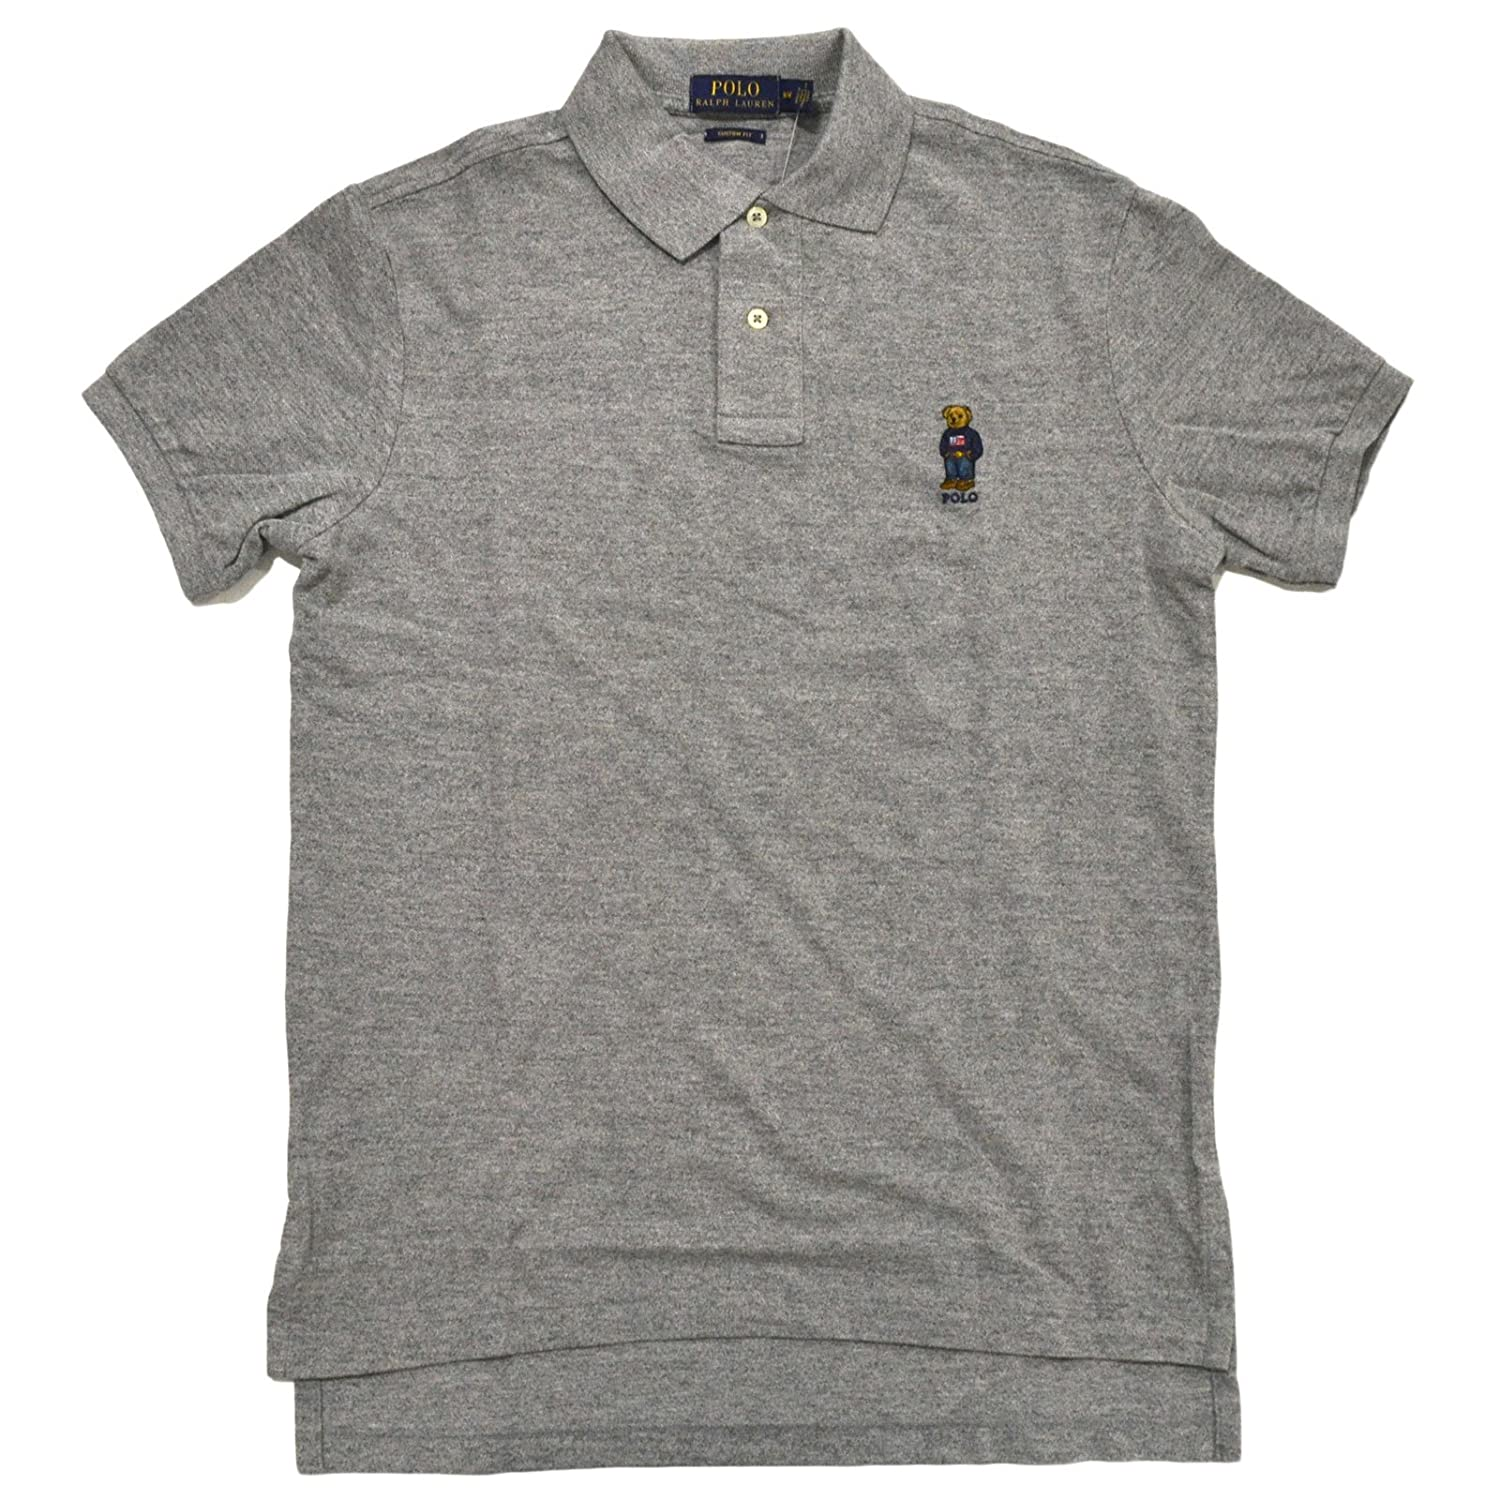 1341baab4 Polo Ralph Lauren Mens Custom Fit Bear Logo Polo Shirt at Amazon Men's  Clothing store: